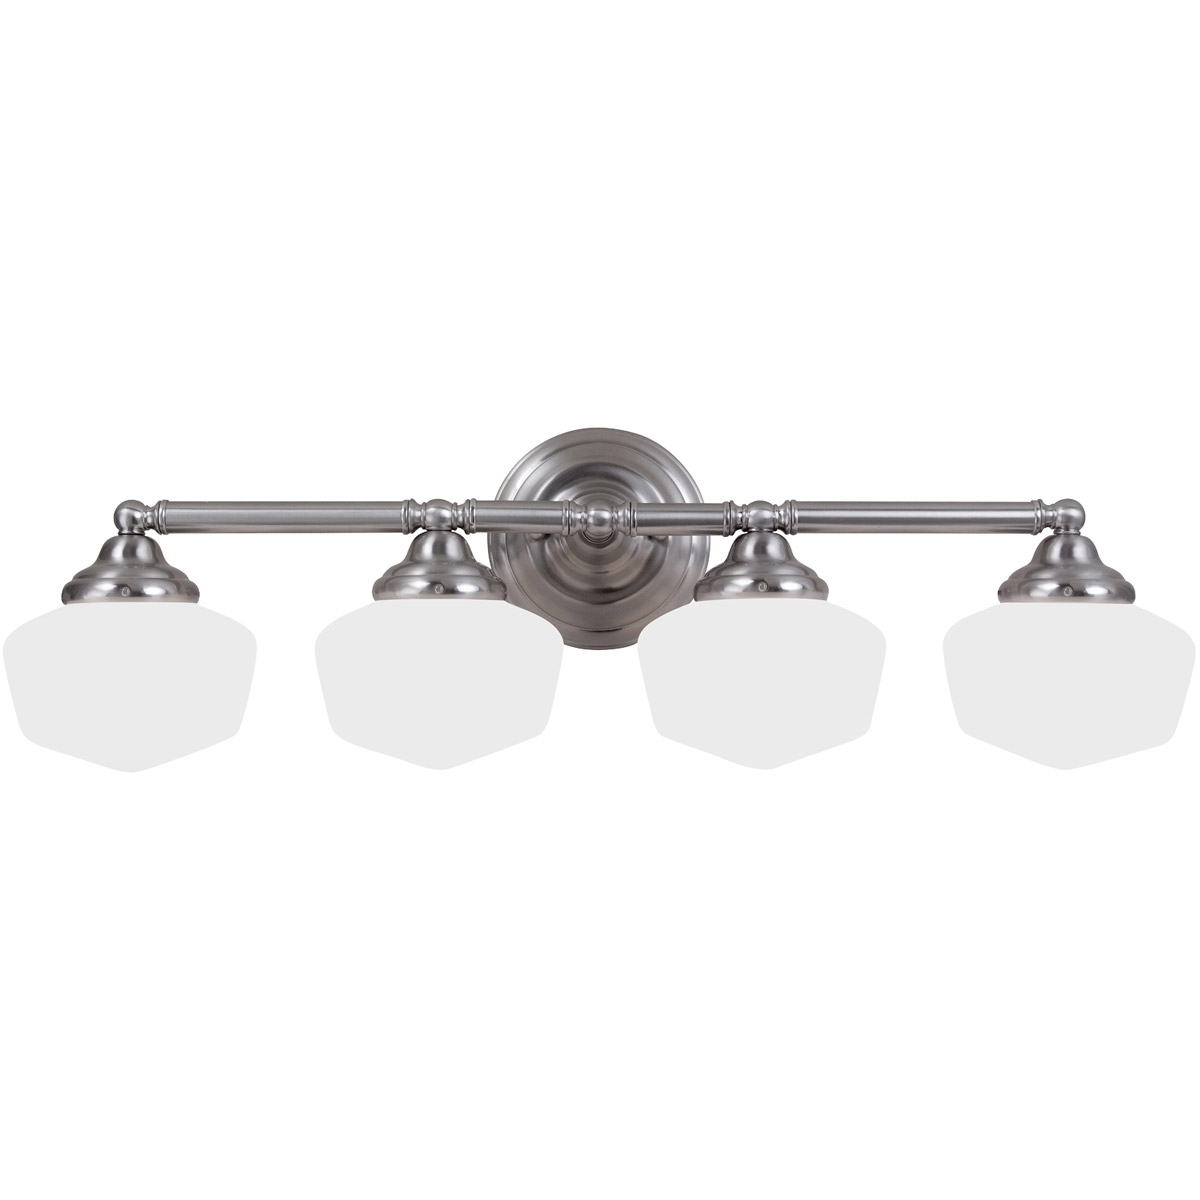 Sea Gull 44439-962 Academy 4 Light 32 inch Brushed Nickel Bath Vanity Wall Light in Standard photo